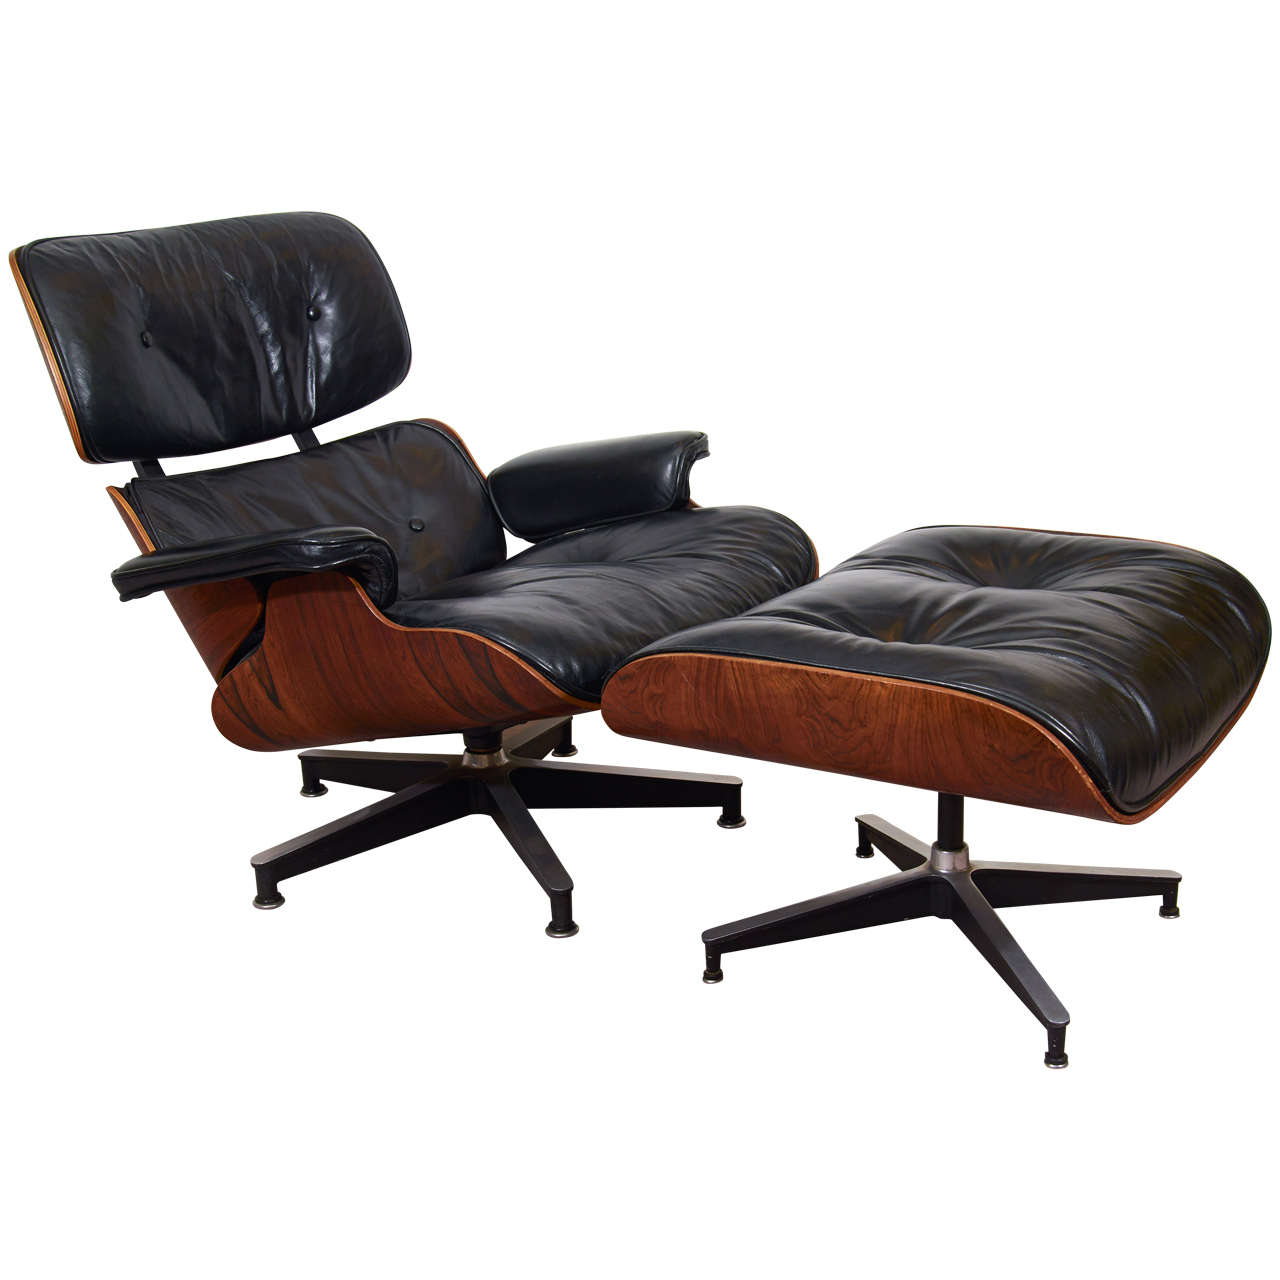 charles and ray eames 670 671 lounge chair and ottoman at 1stdibs. Black Bedroom Furniture Sets. Home Design Ideas